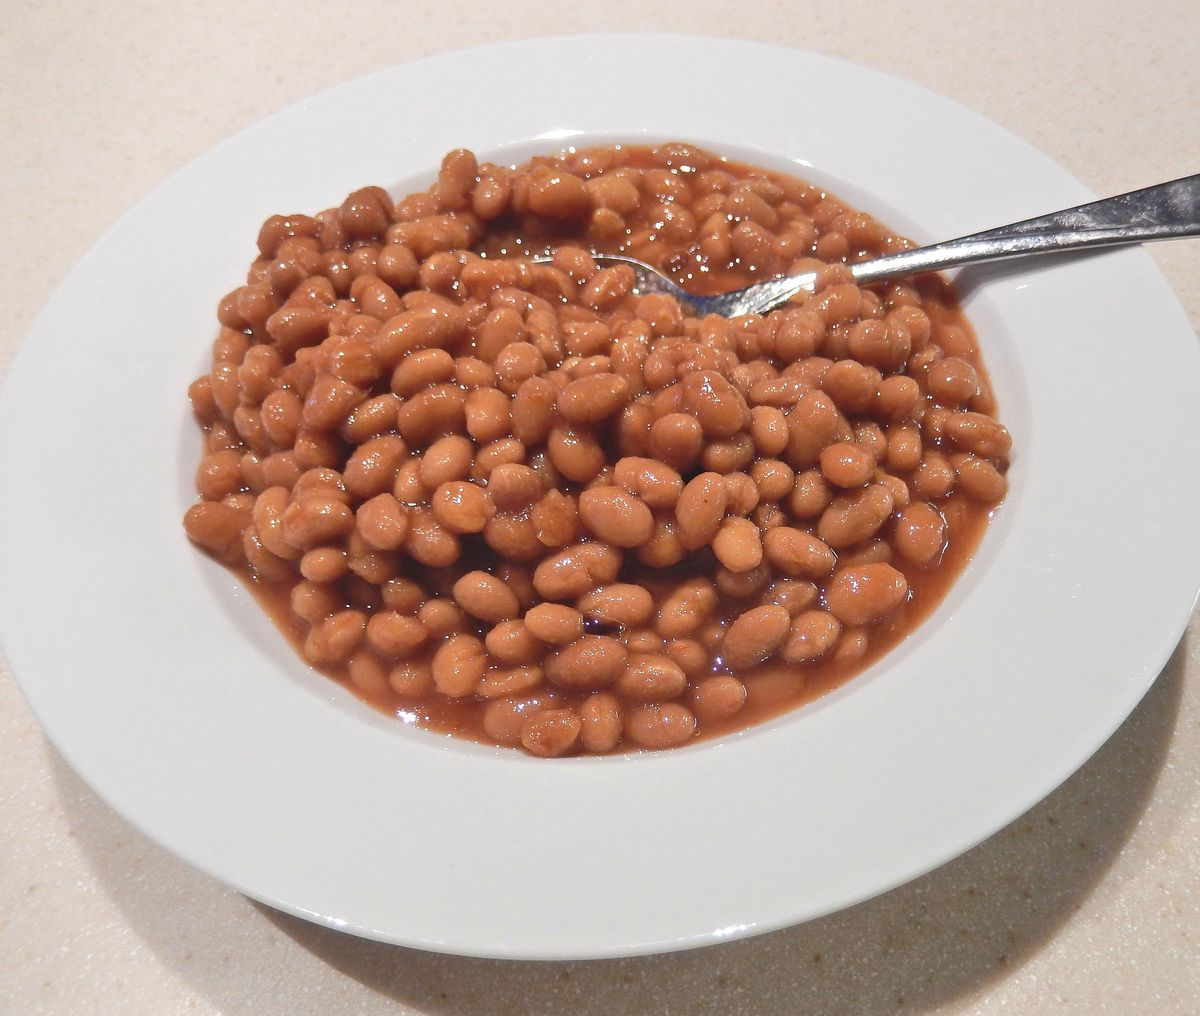 a bowlful of boston baked beans with a spoon